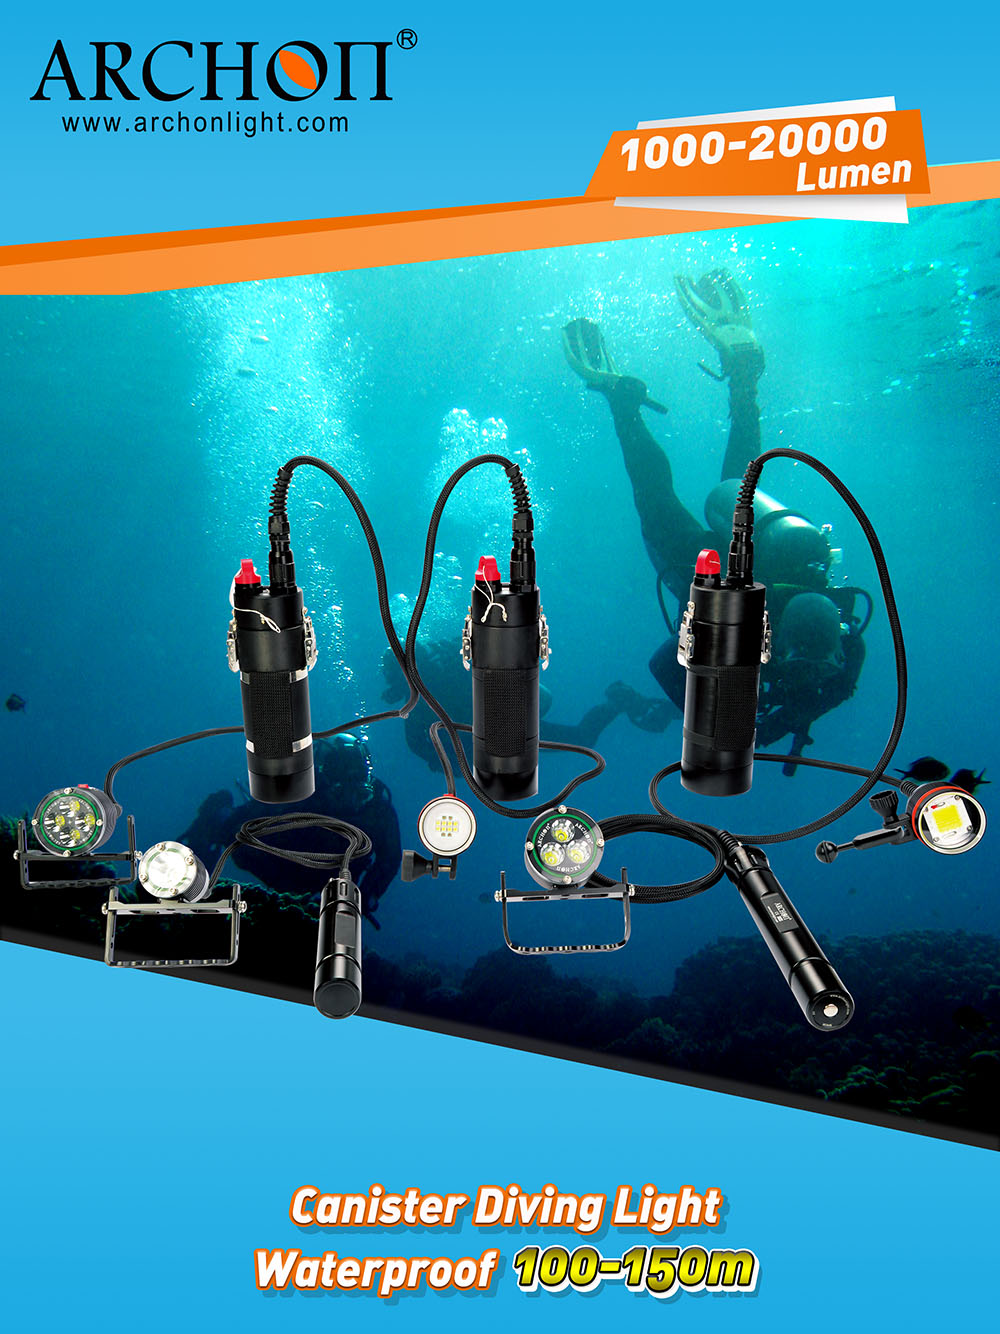 Archon Canister Diving Lights